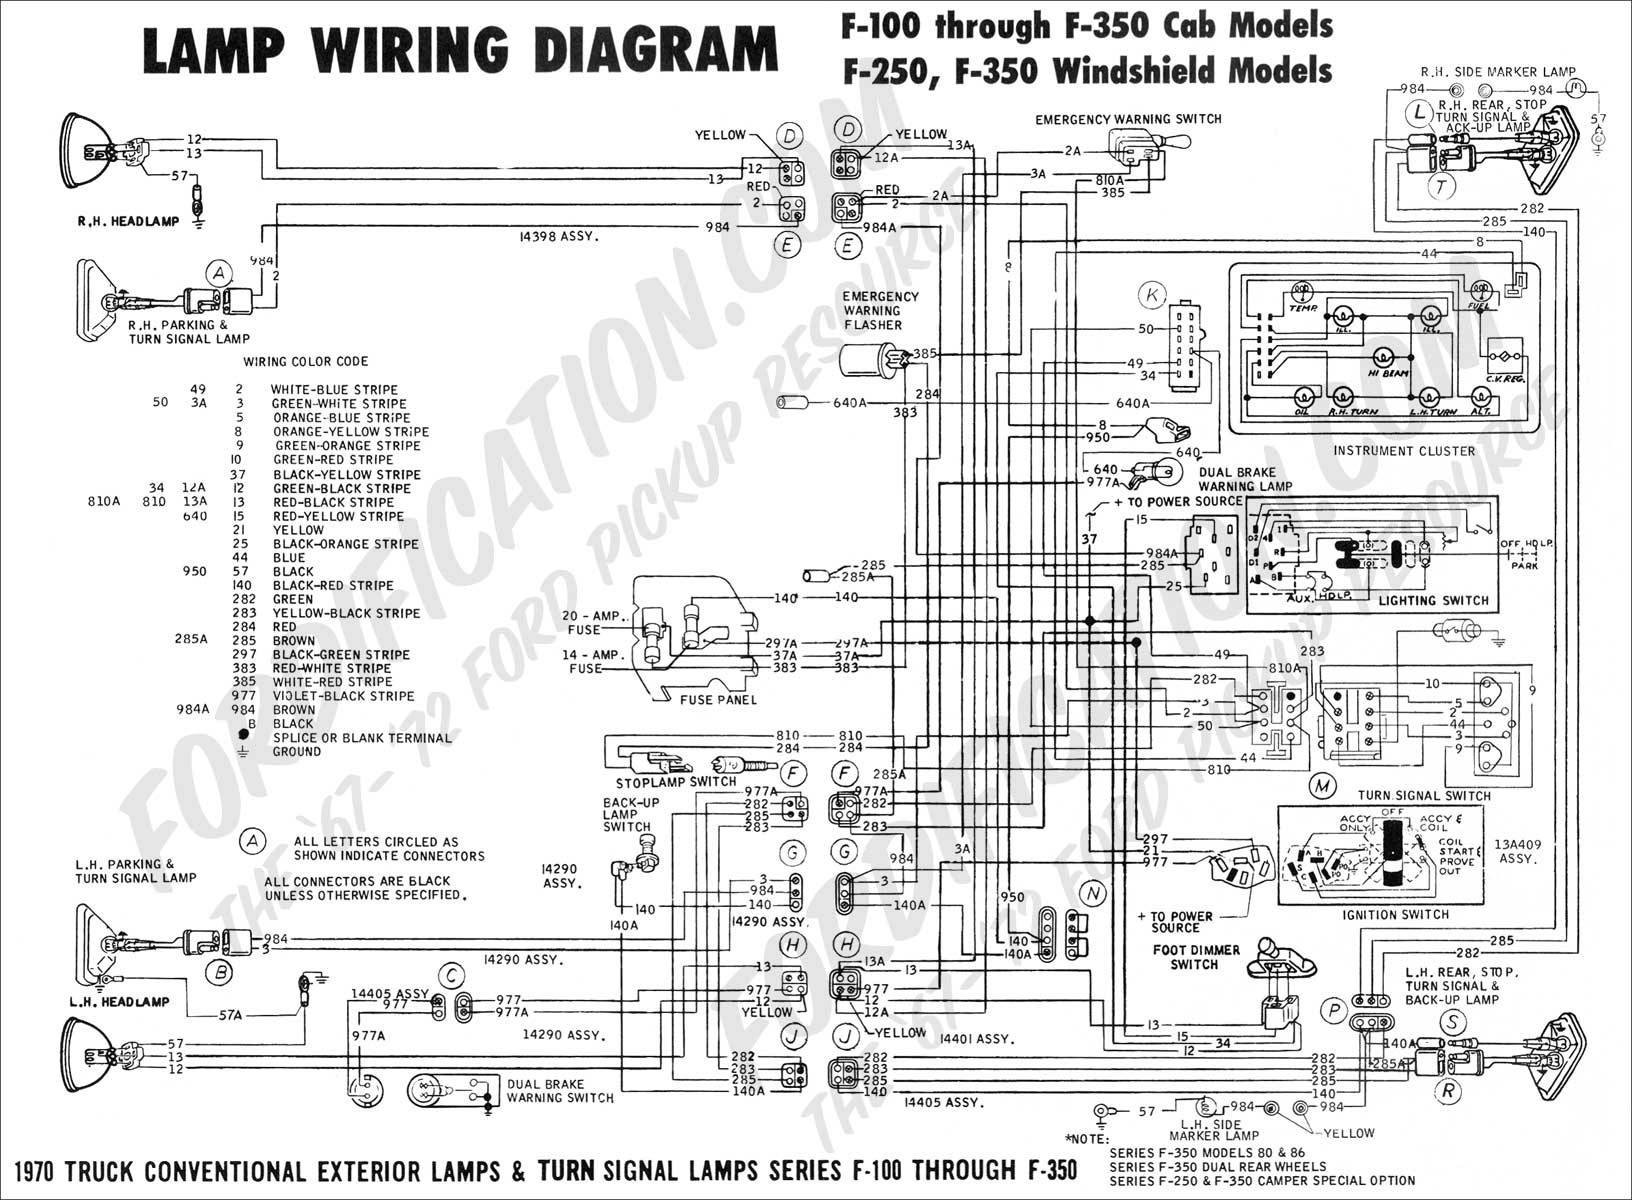 Ford Ka Fuse Box Diagram Complete Wiring Diagrams F Panel